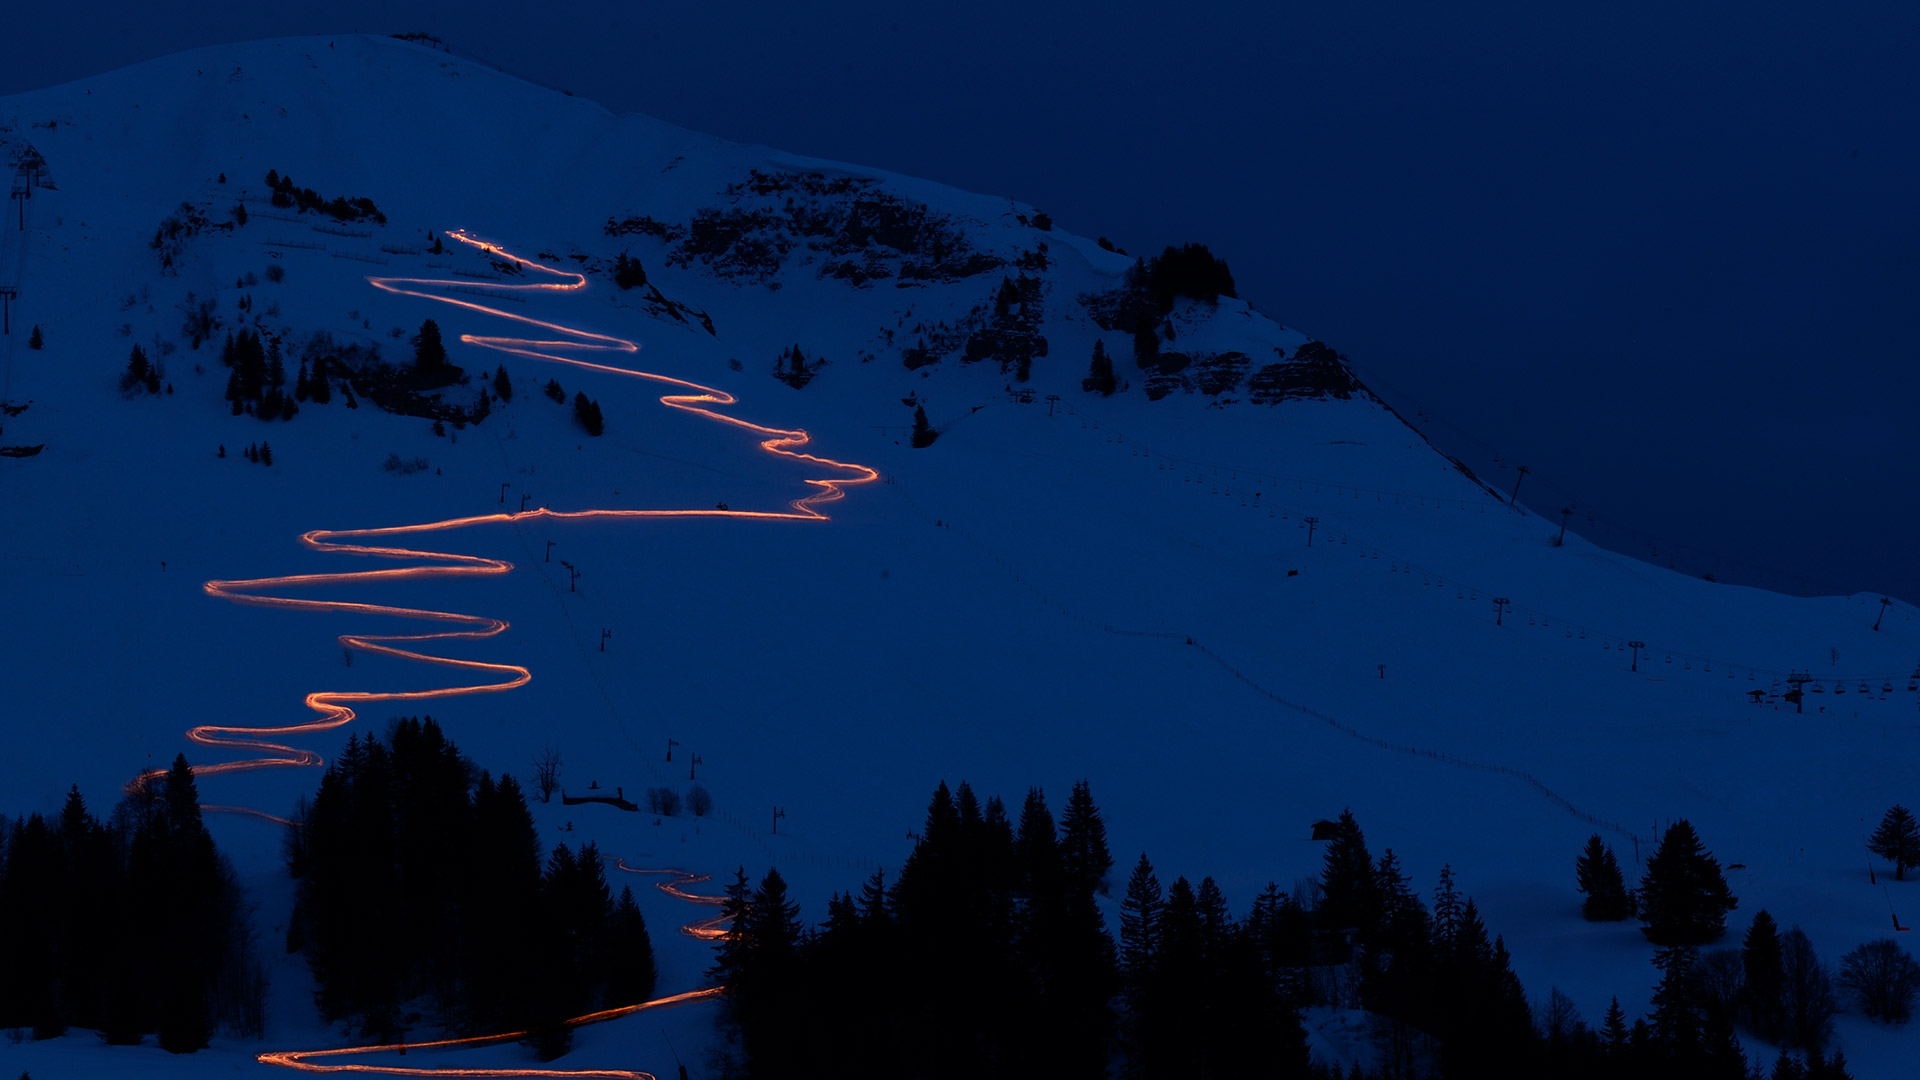 2013-059-a-animation-lebeau-h13-aravis-147894